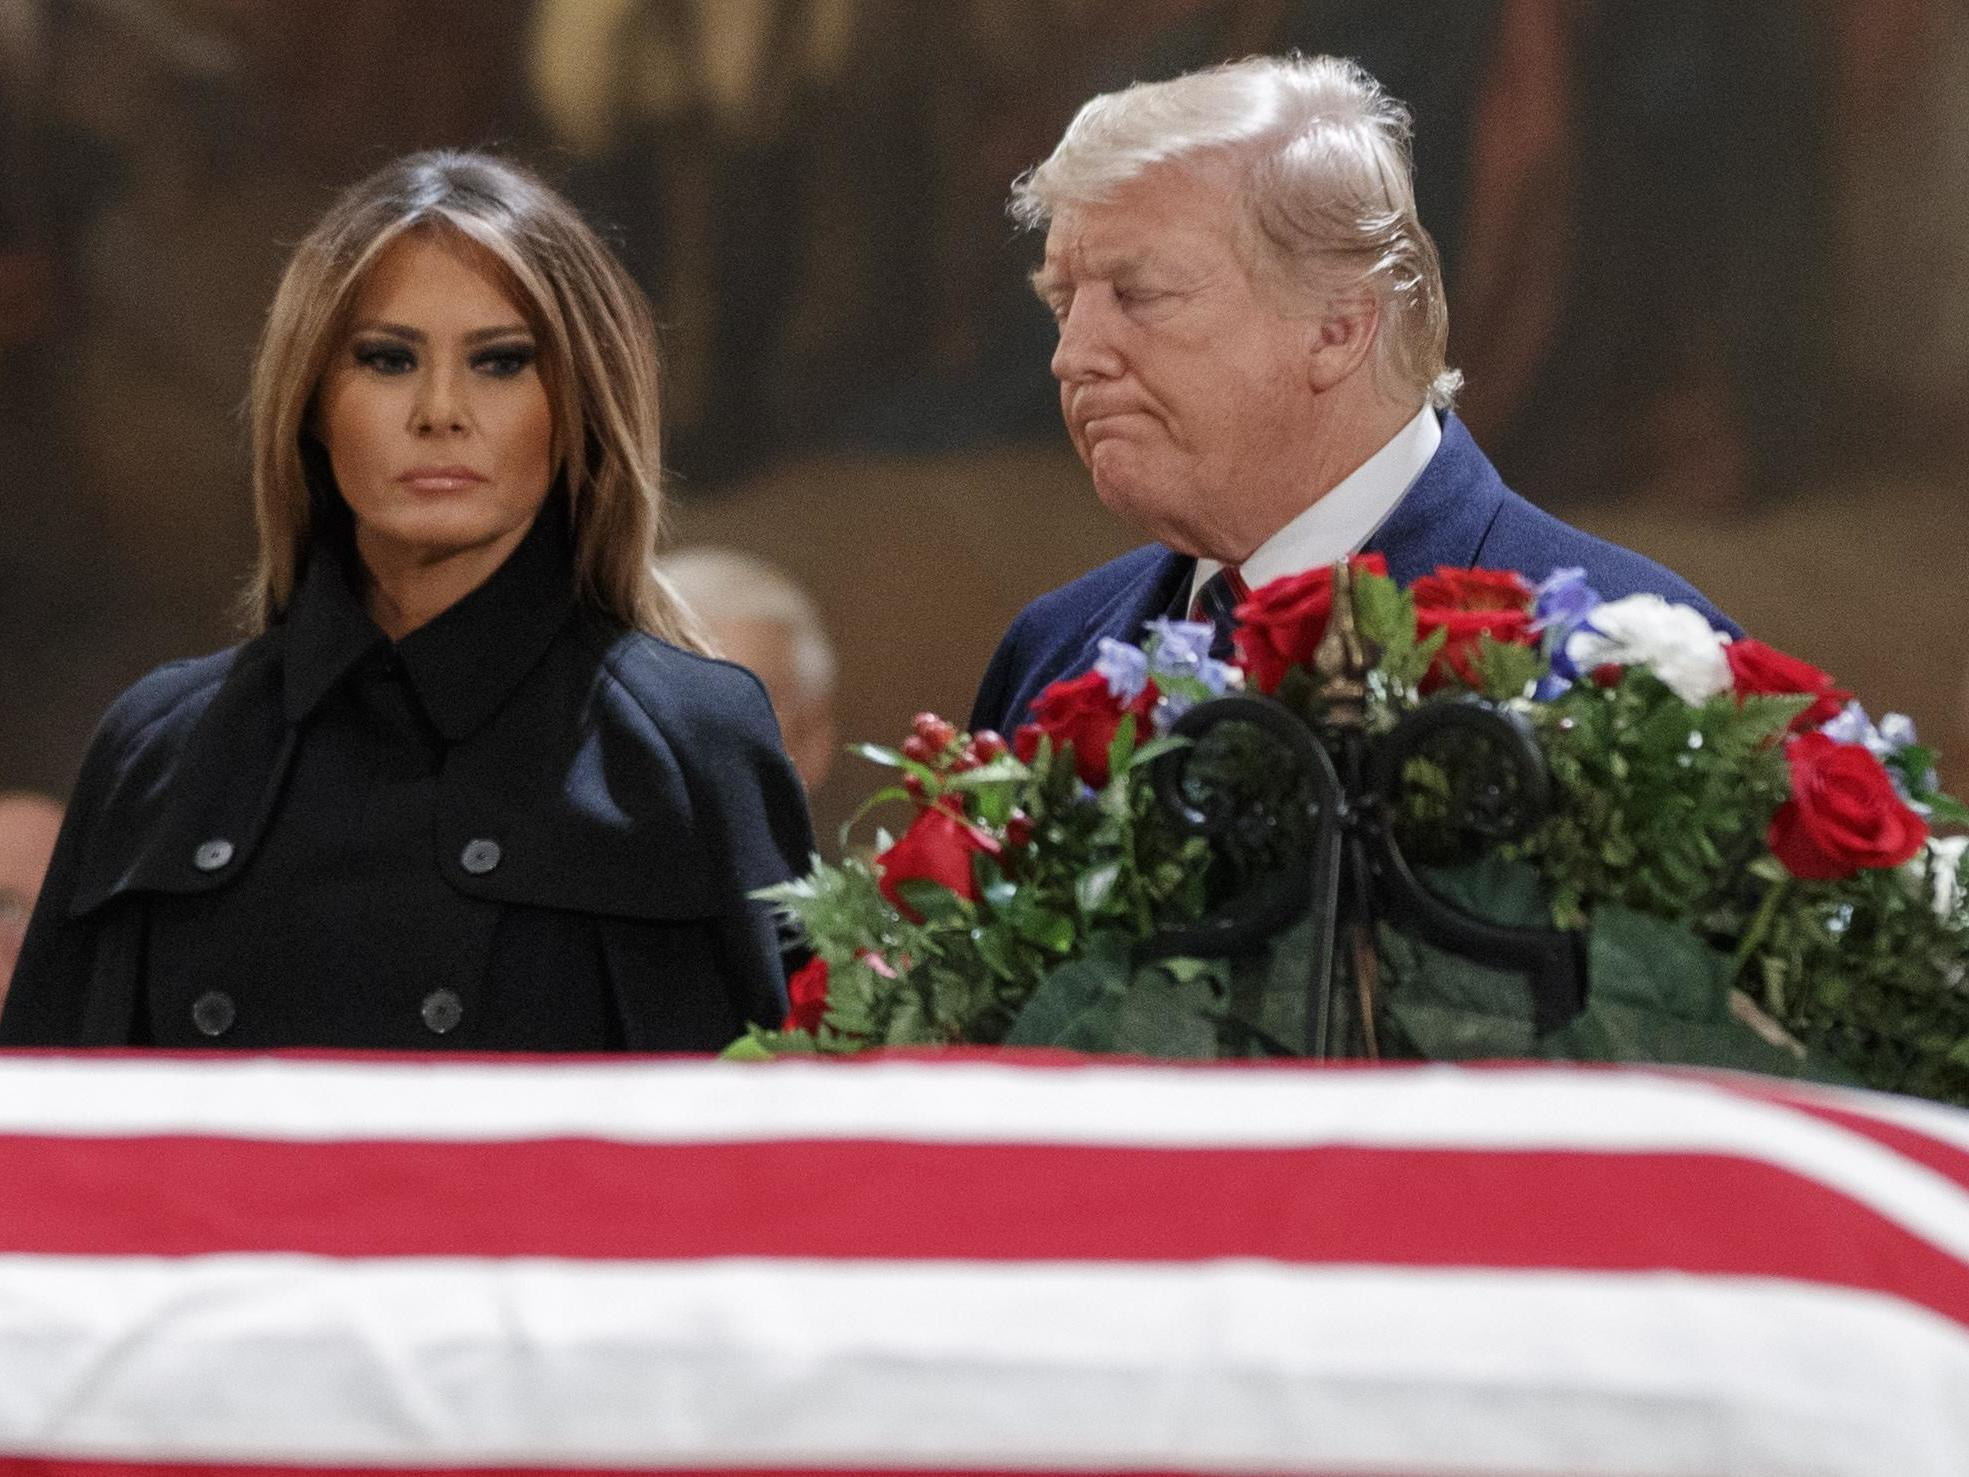 Donald Trump tweets about oil prices moments before George HW Bush funeral, which he says 'is not a funeral'